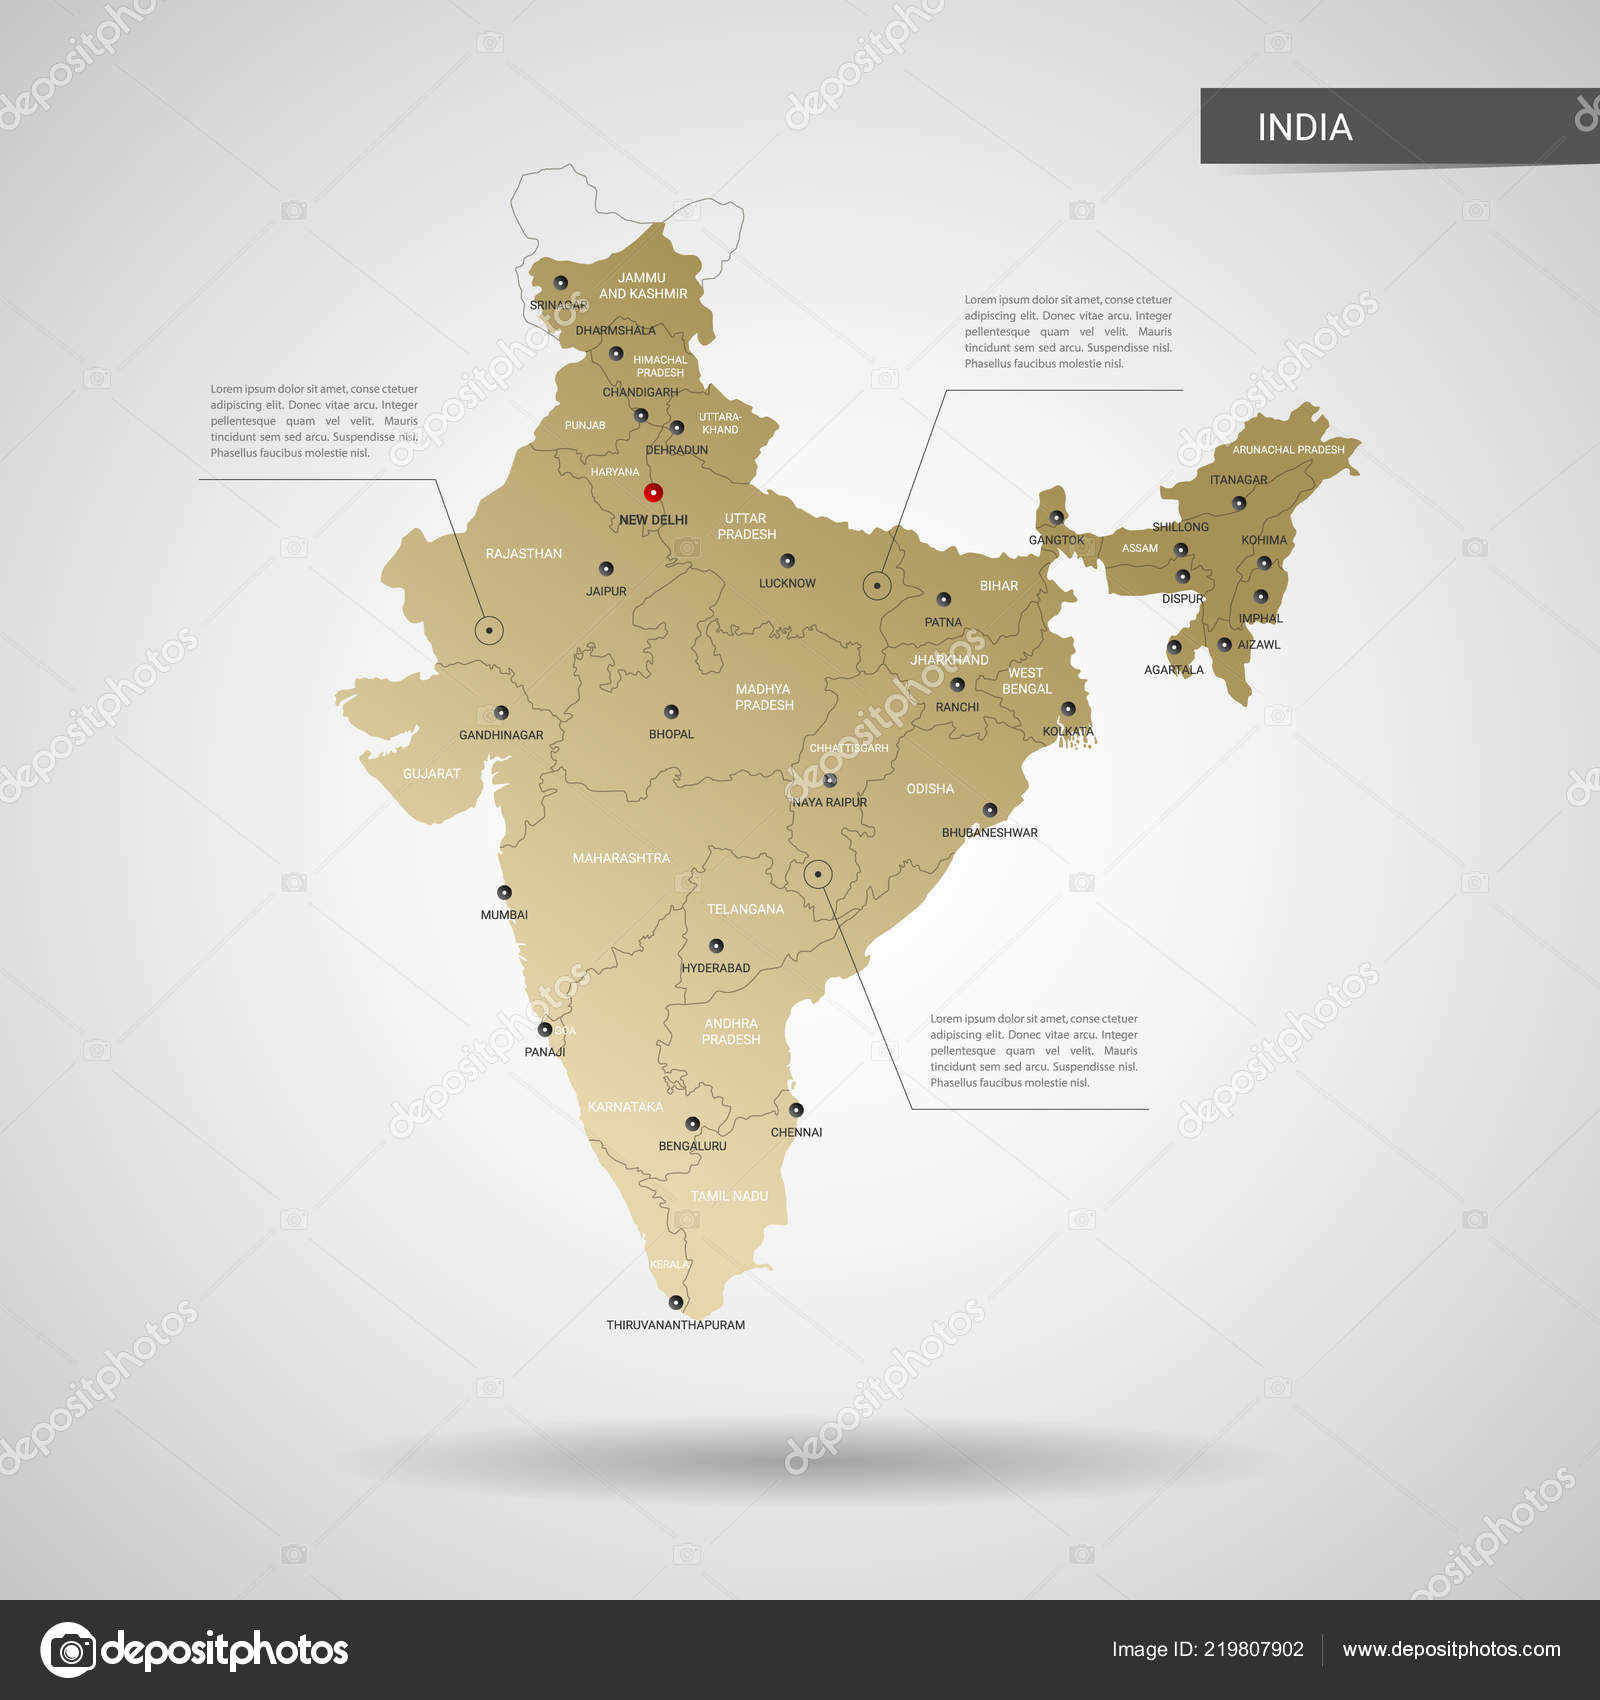 Stylized Vector India Map Infographic Gold Map Illustration Cities ...